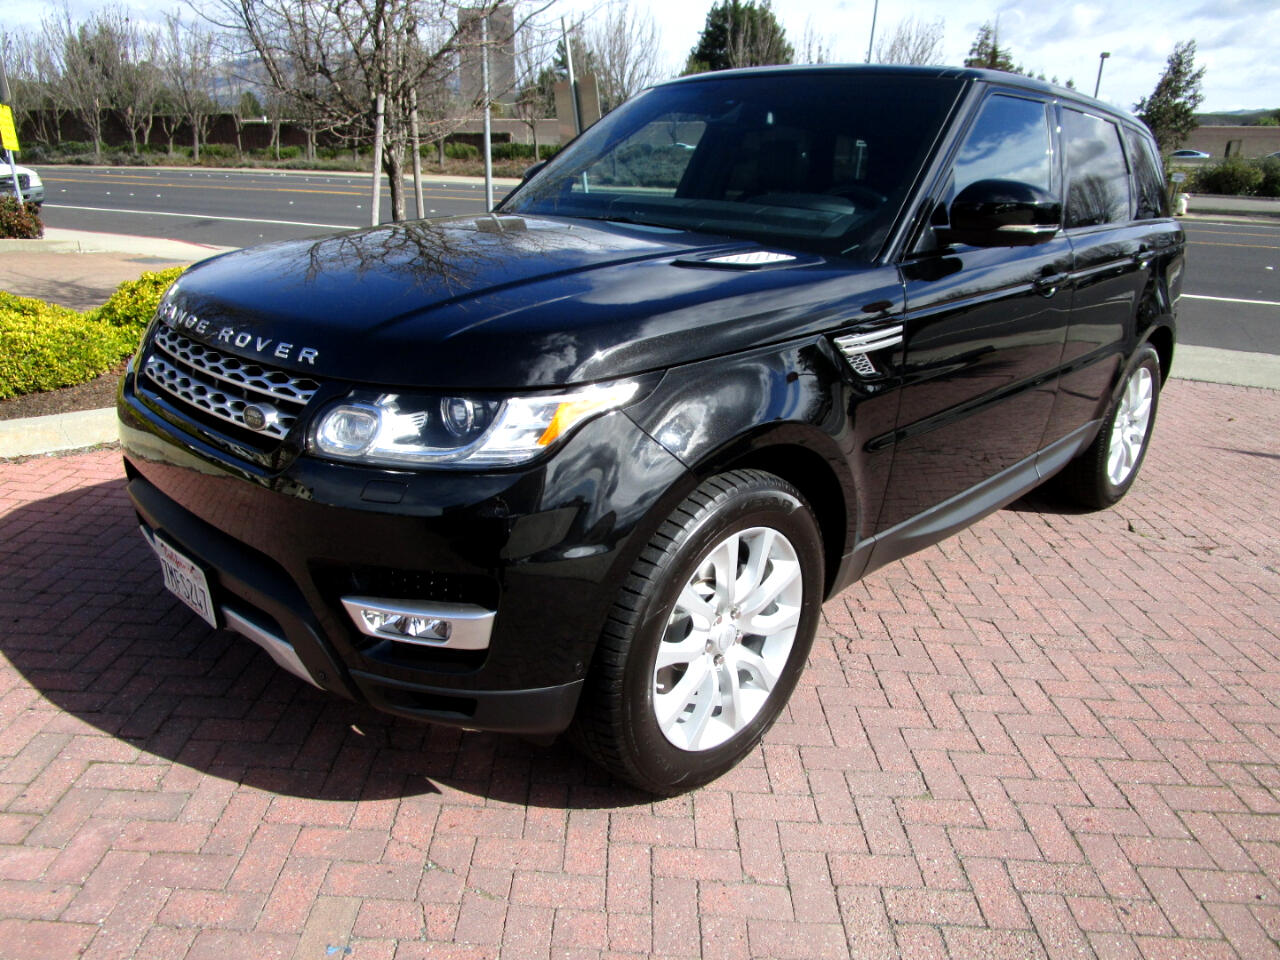 2015 Land Rover Range Rover Sport HSE S/C*HEAT/AC SEATS/STR WHL*REAR HEAT SEATS*PANO